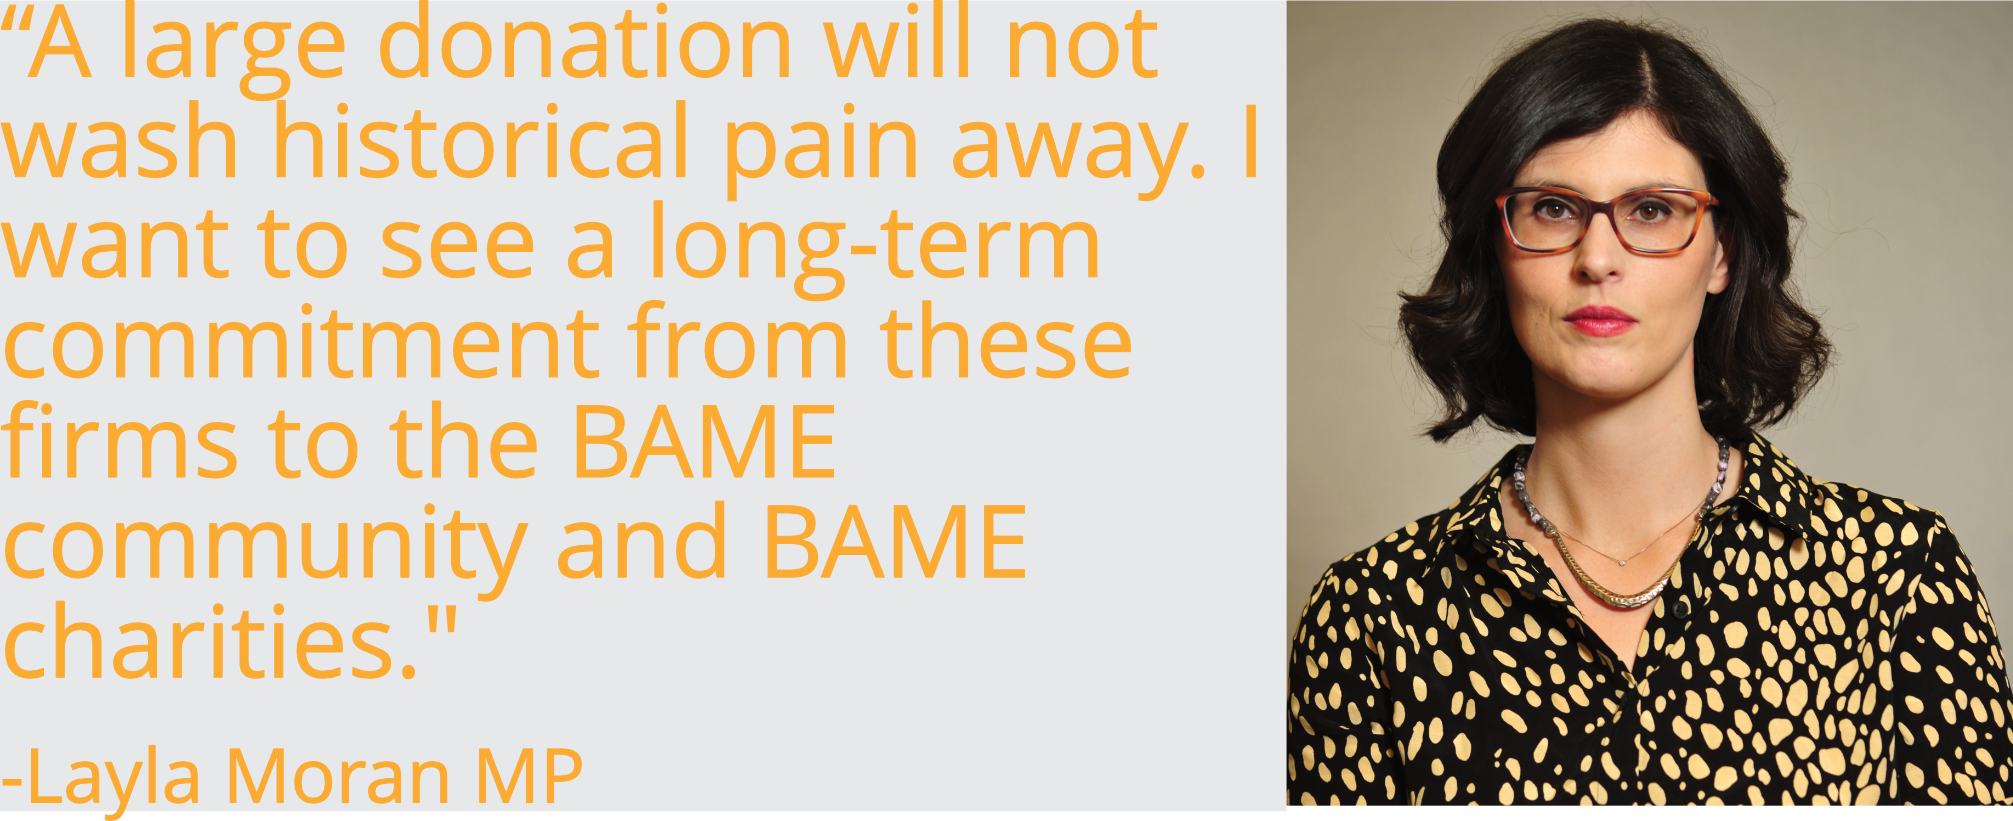 A large donation will not wash historical pain away. I want to see a long-term commitment from these firms to the BAME community and BAME charities.